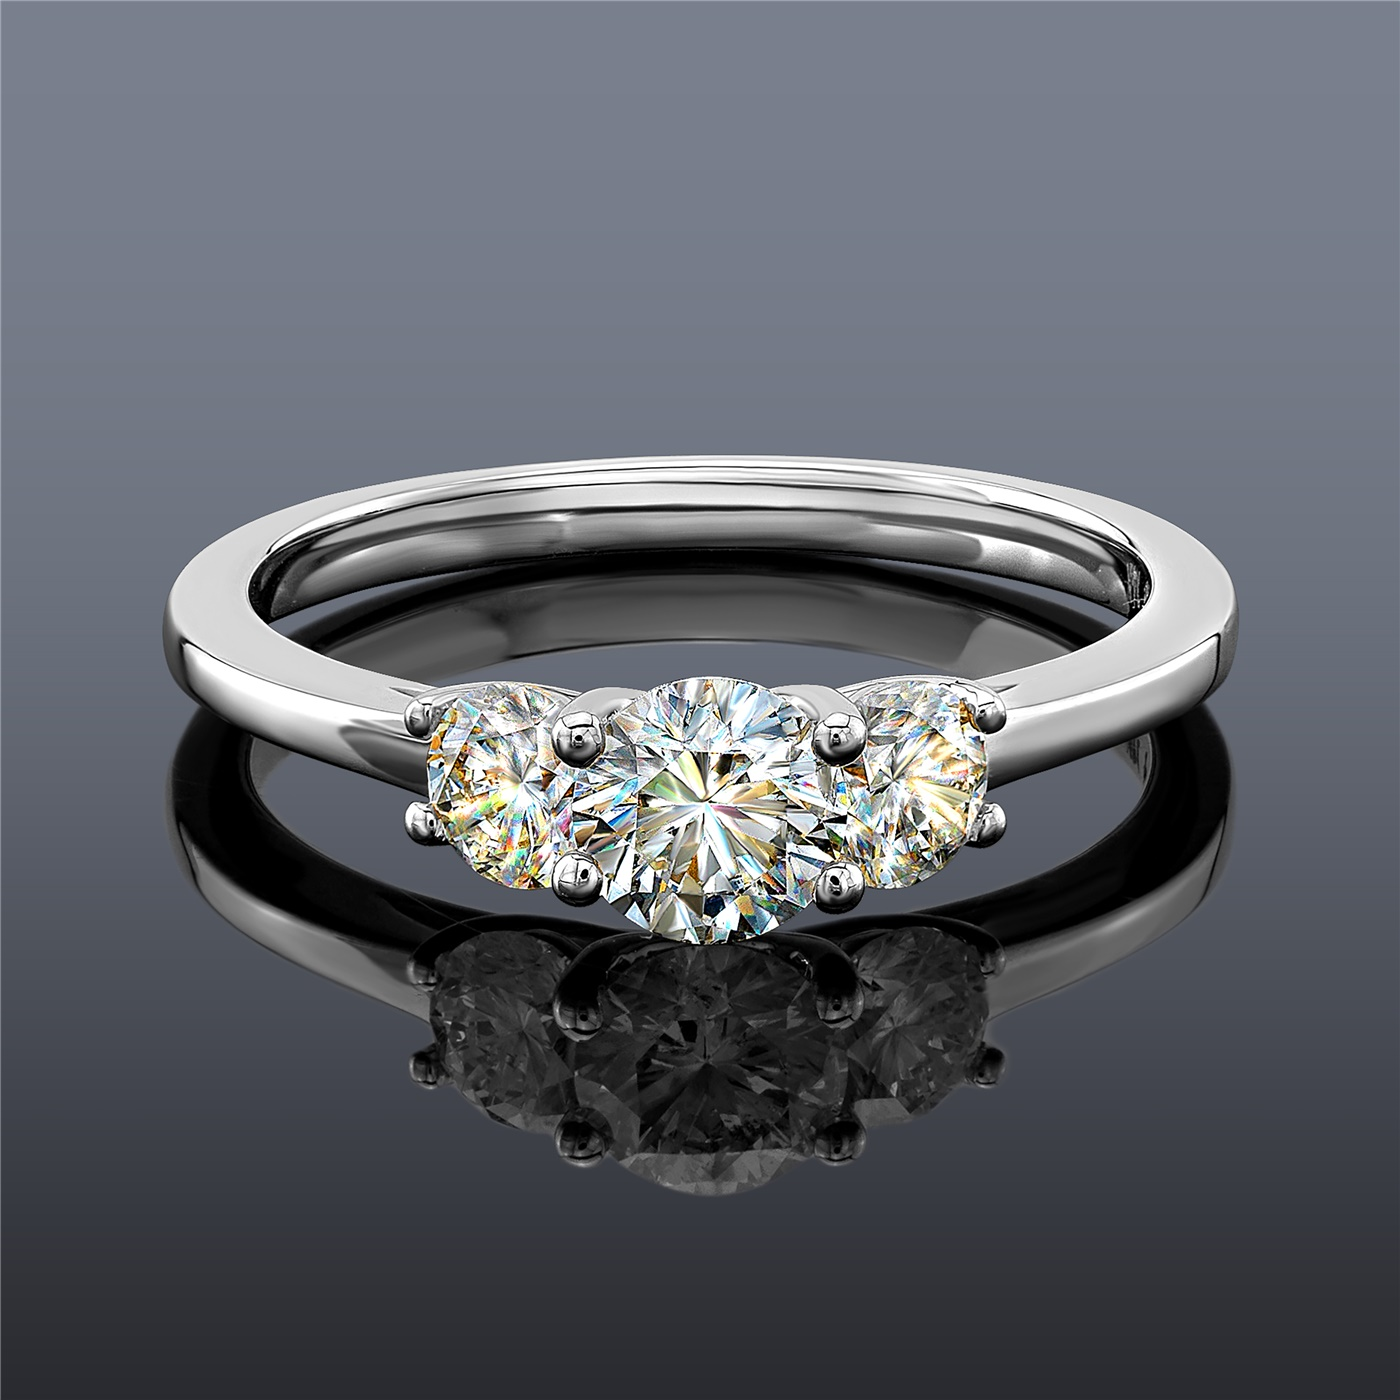 Engagement Rings No Stone: Fire Polish Diamond 3 Stone Ring In 14K White Gold, 1